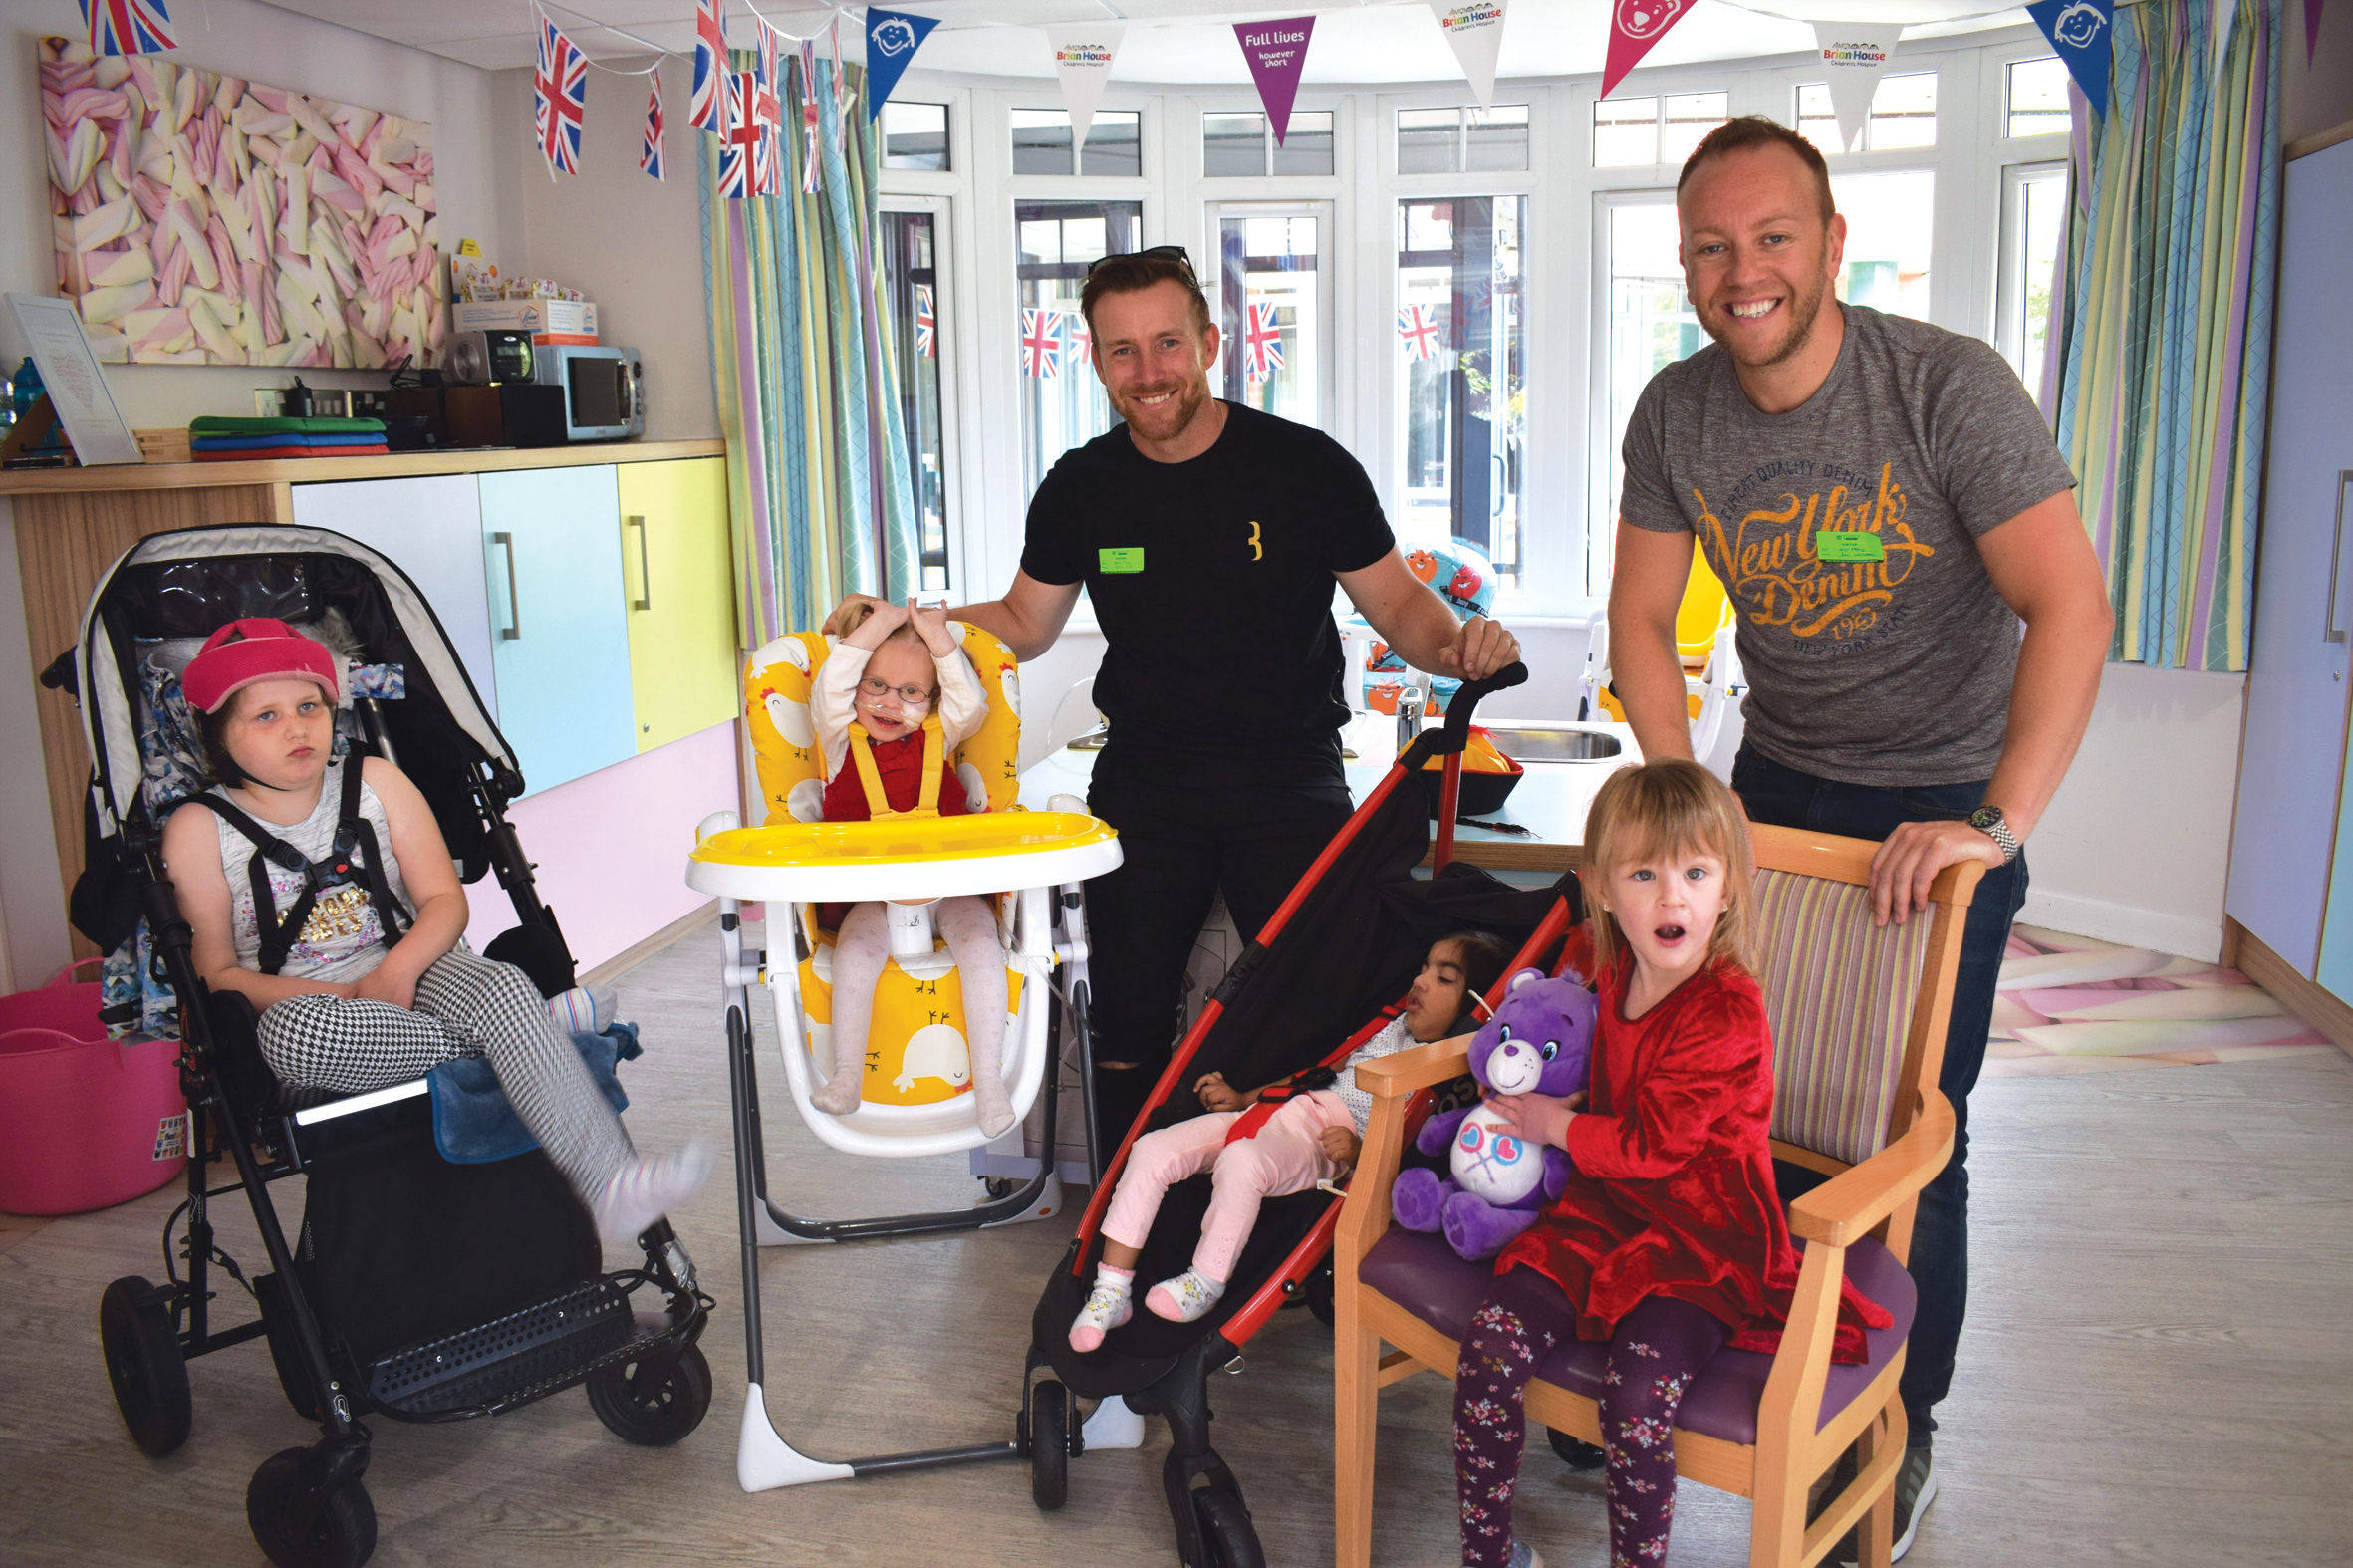 Steven Croft and Dan Whiston meet children at Brian House Children's Hospice